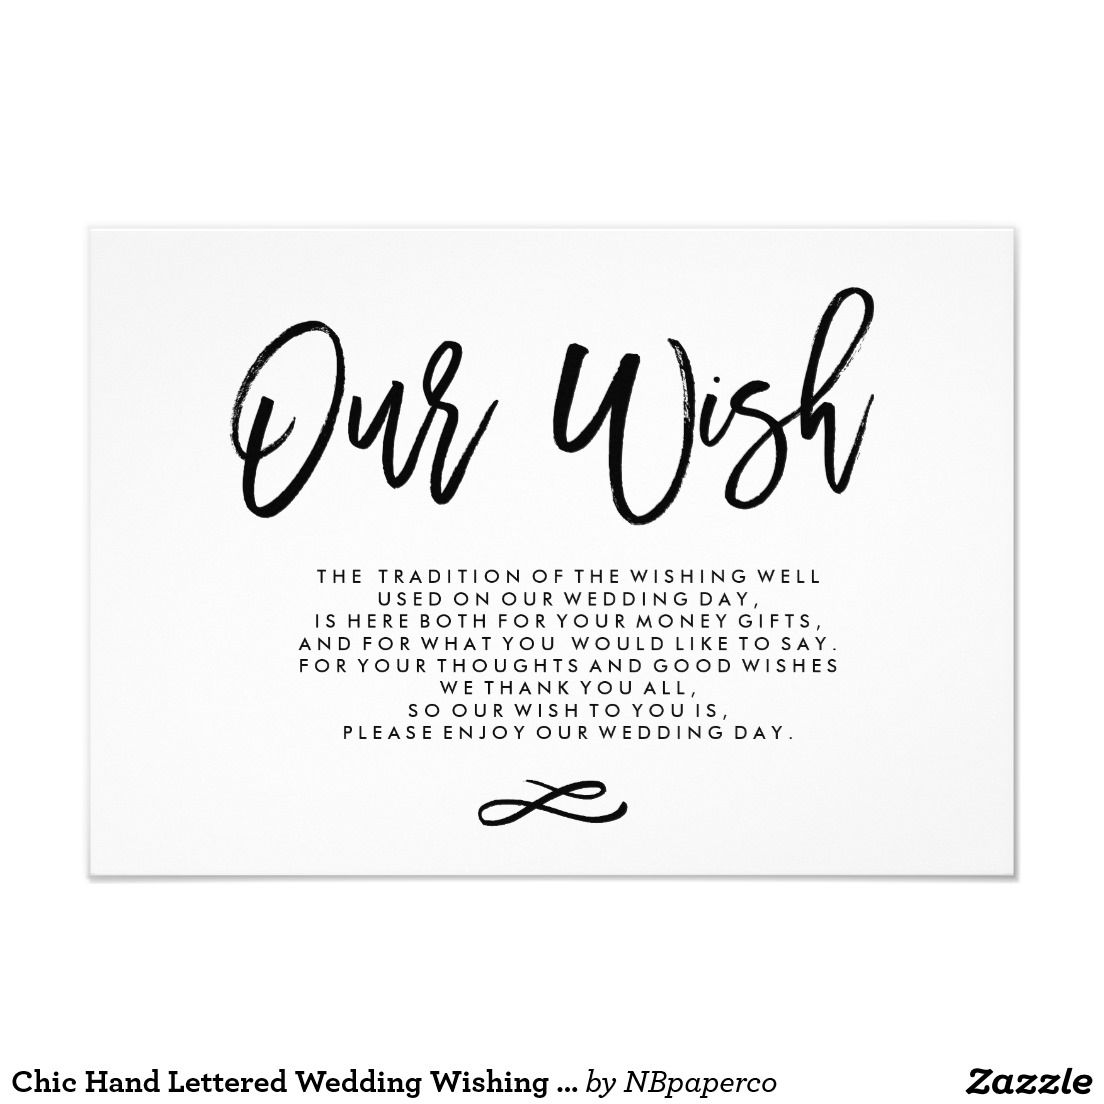 Chic Hand Lettered Wedding Wishing Well Enclosure Card